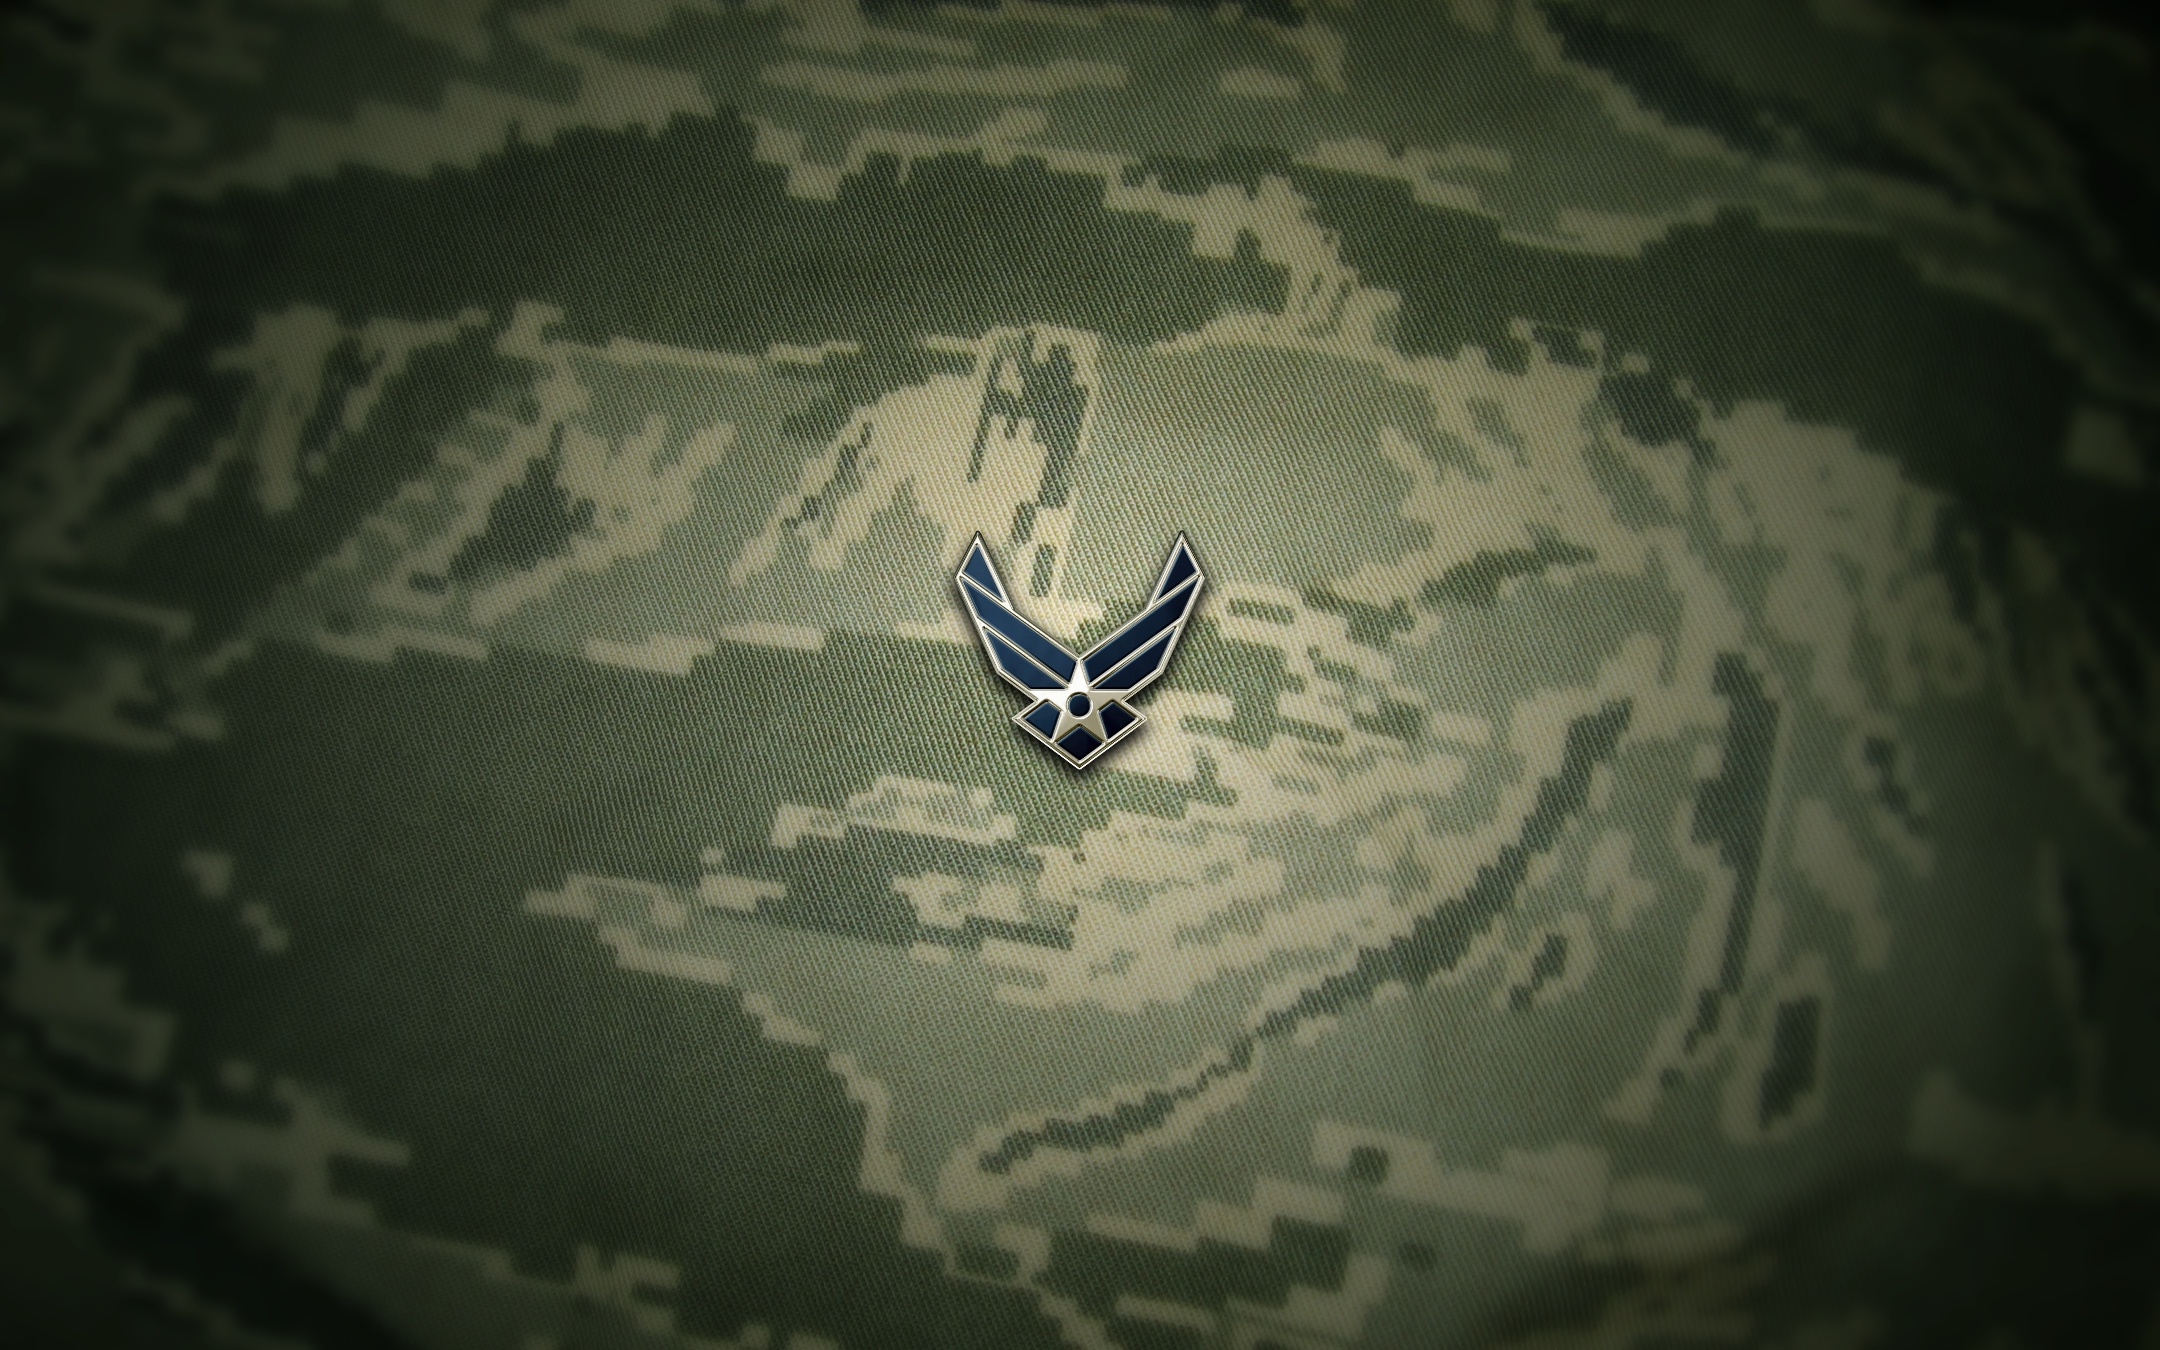 2160x1350 - Air Force Wallpaper for iPhone 40